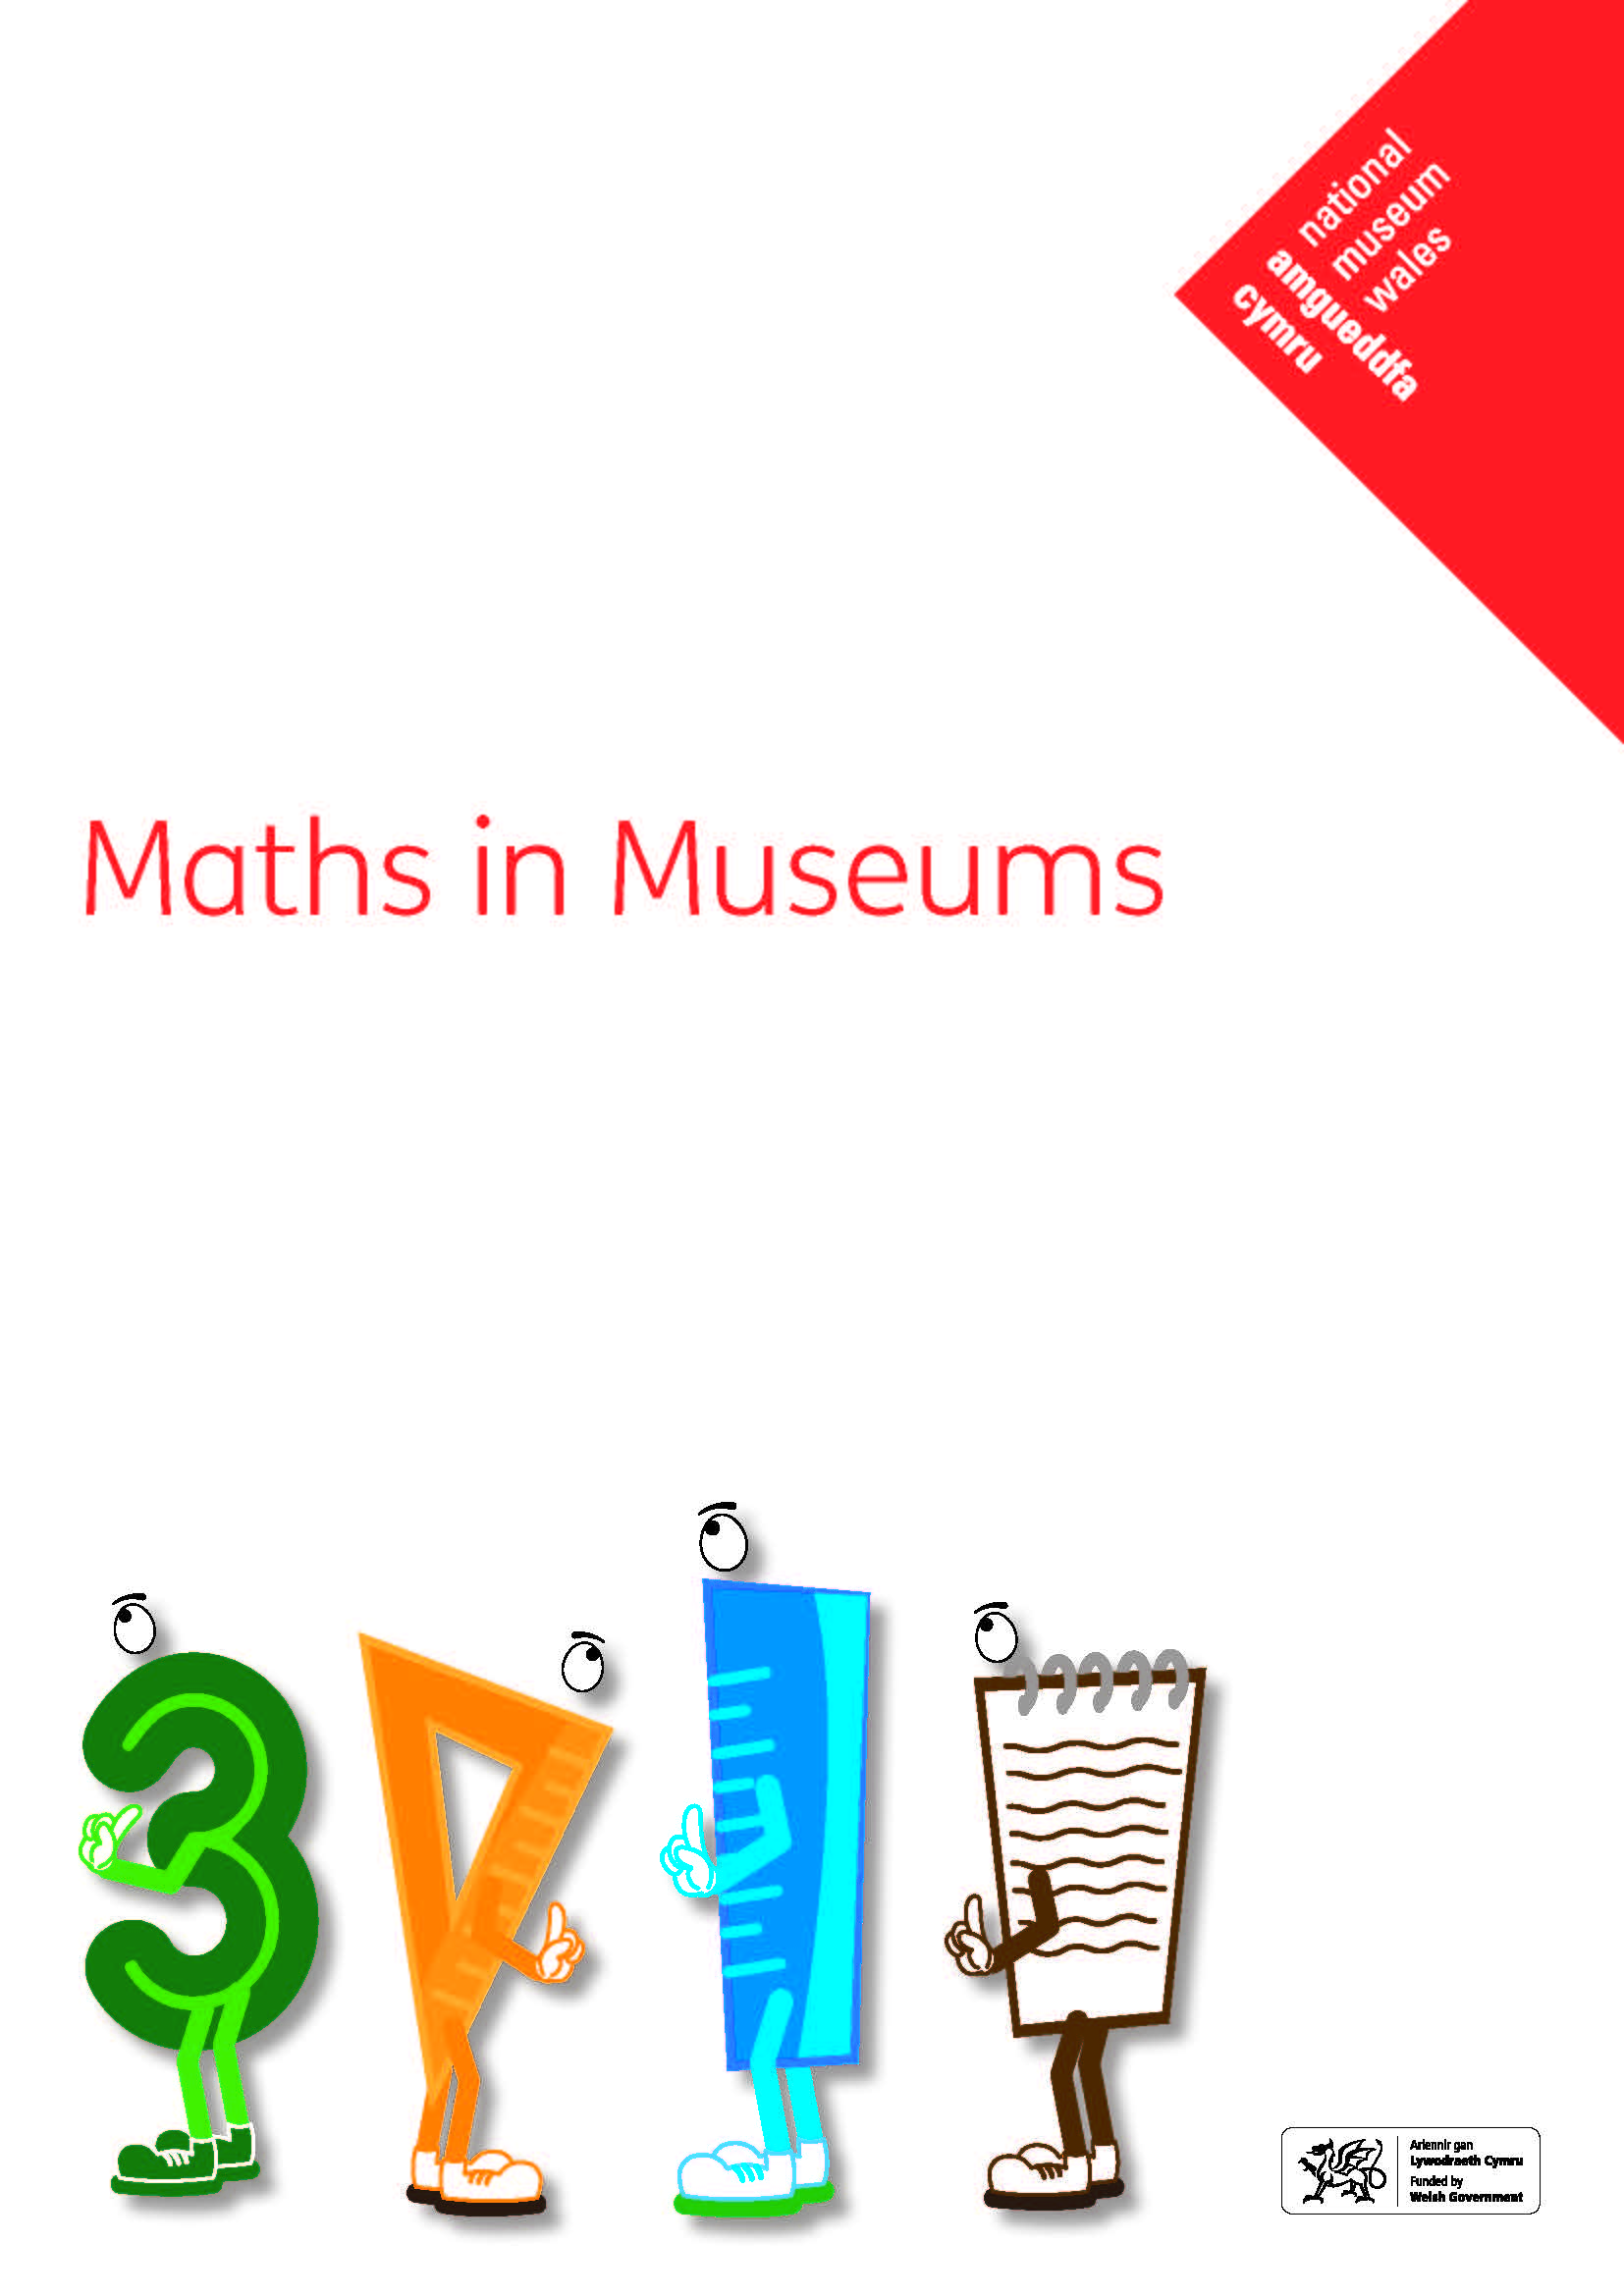 Maths in Museums